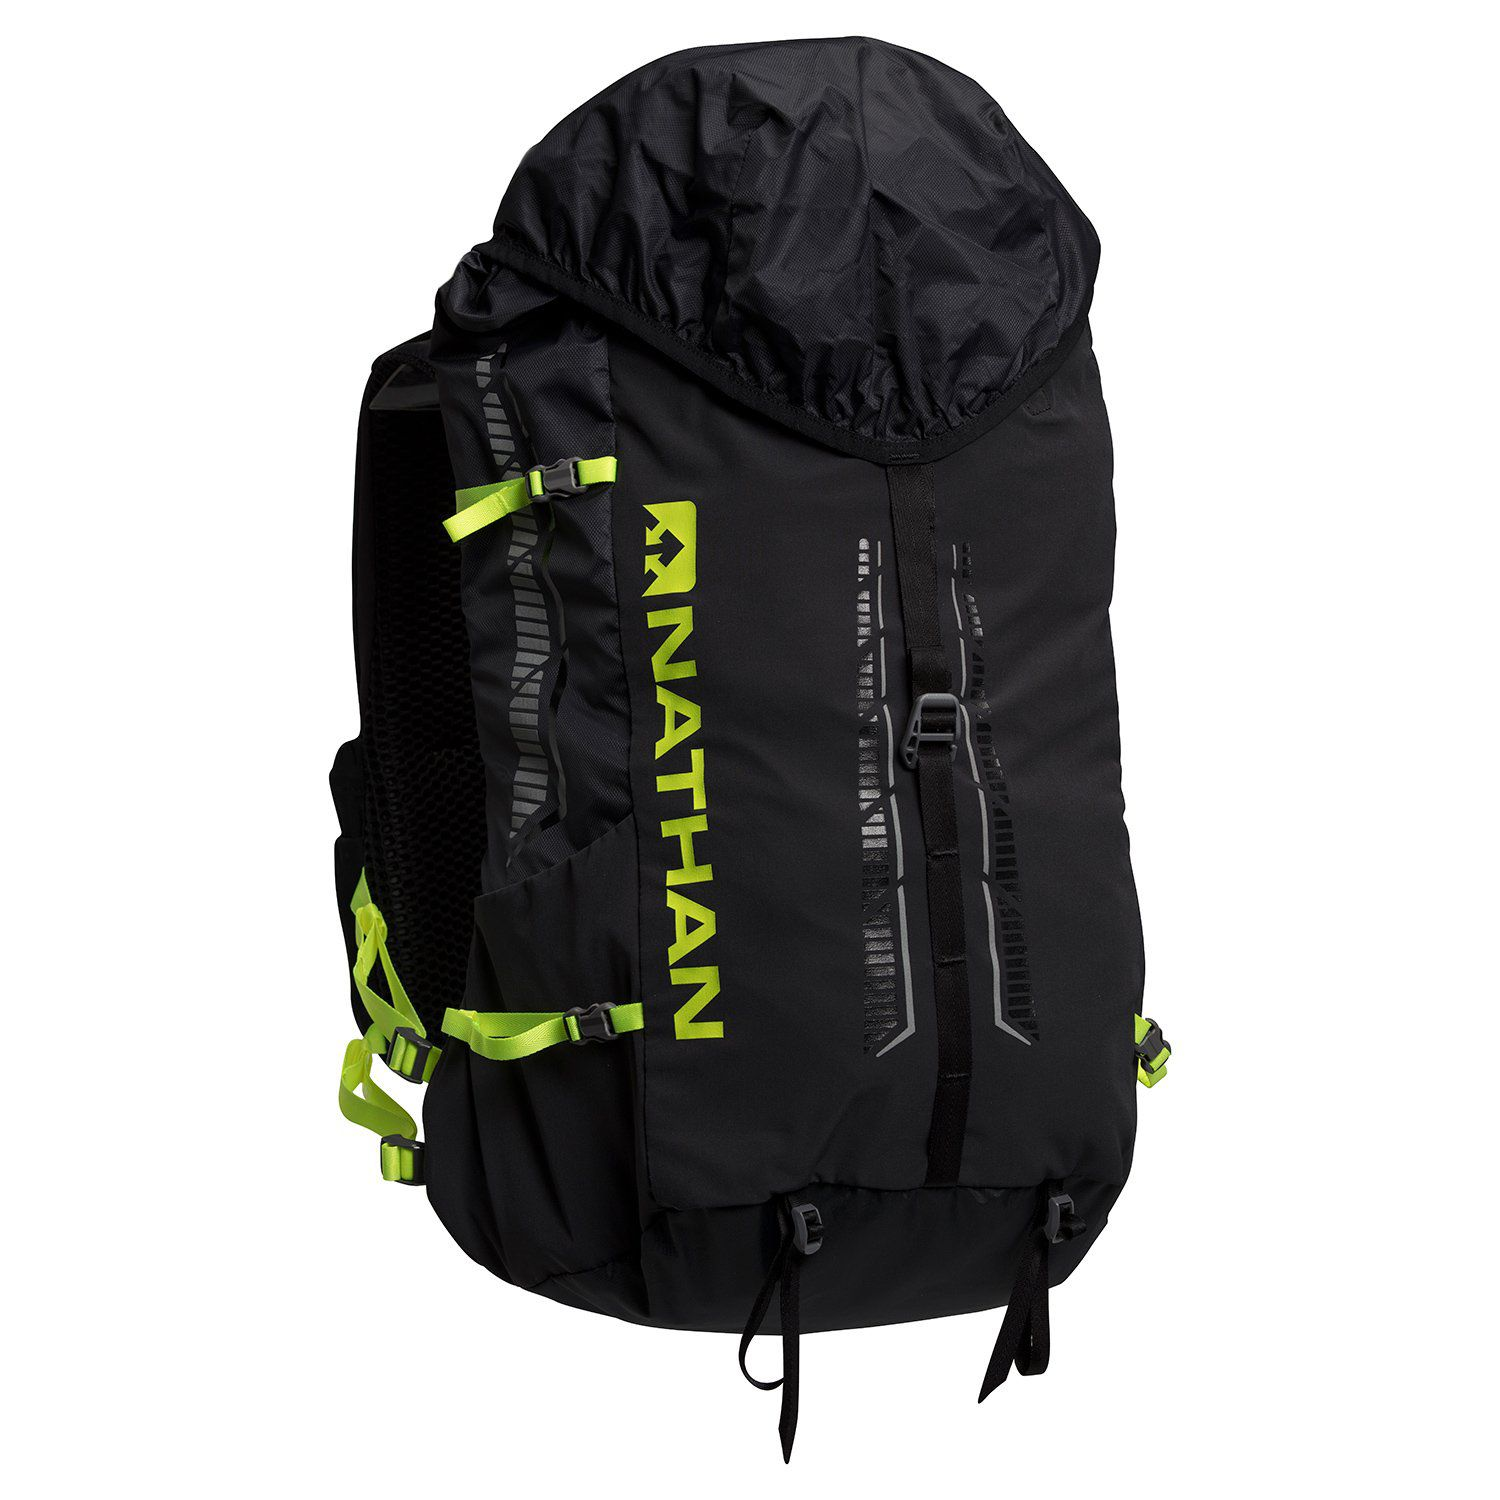 d0b9544f097c80 15 Running Backpacks That Let You Run Commute to Work With All Your Stuff